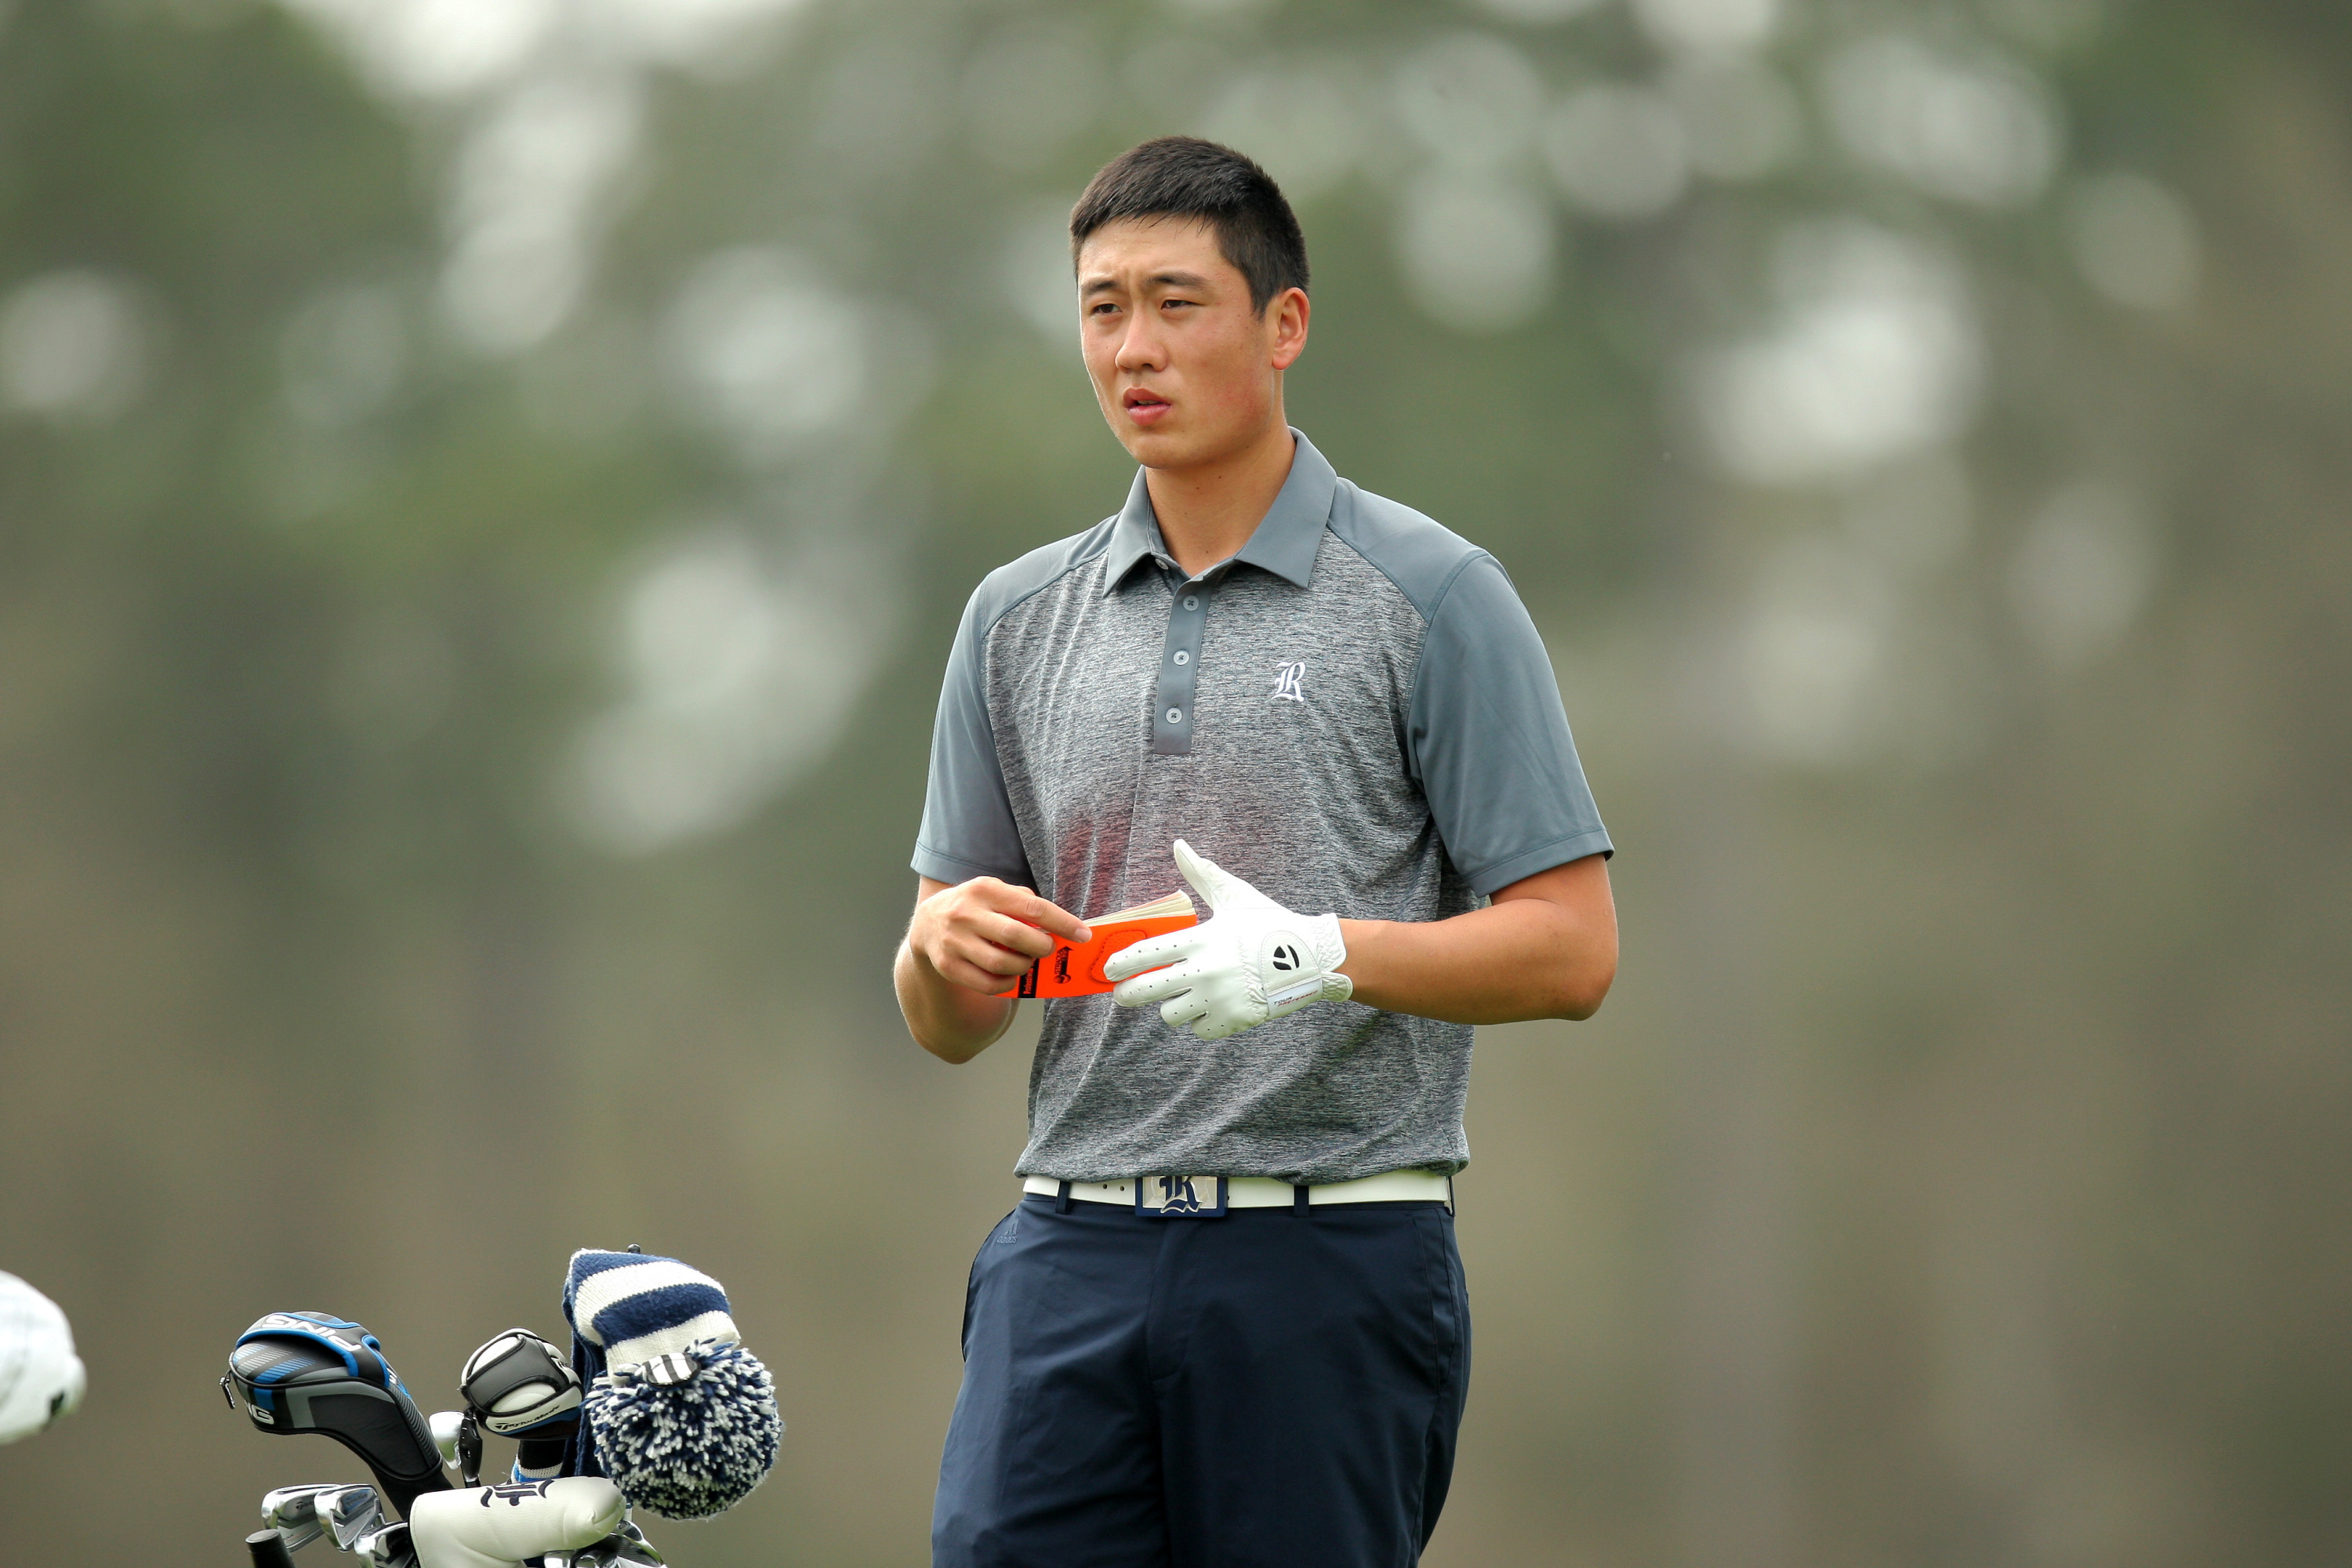 <b>James Lee </b>shot a 74 on Tuesday for his low round of the tournament.